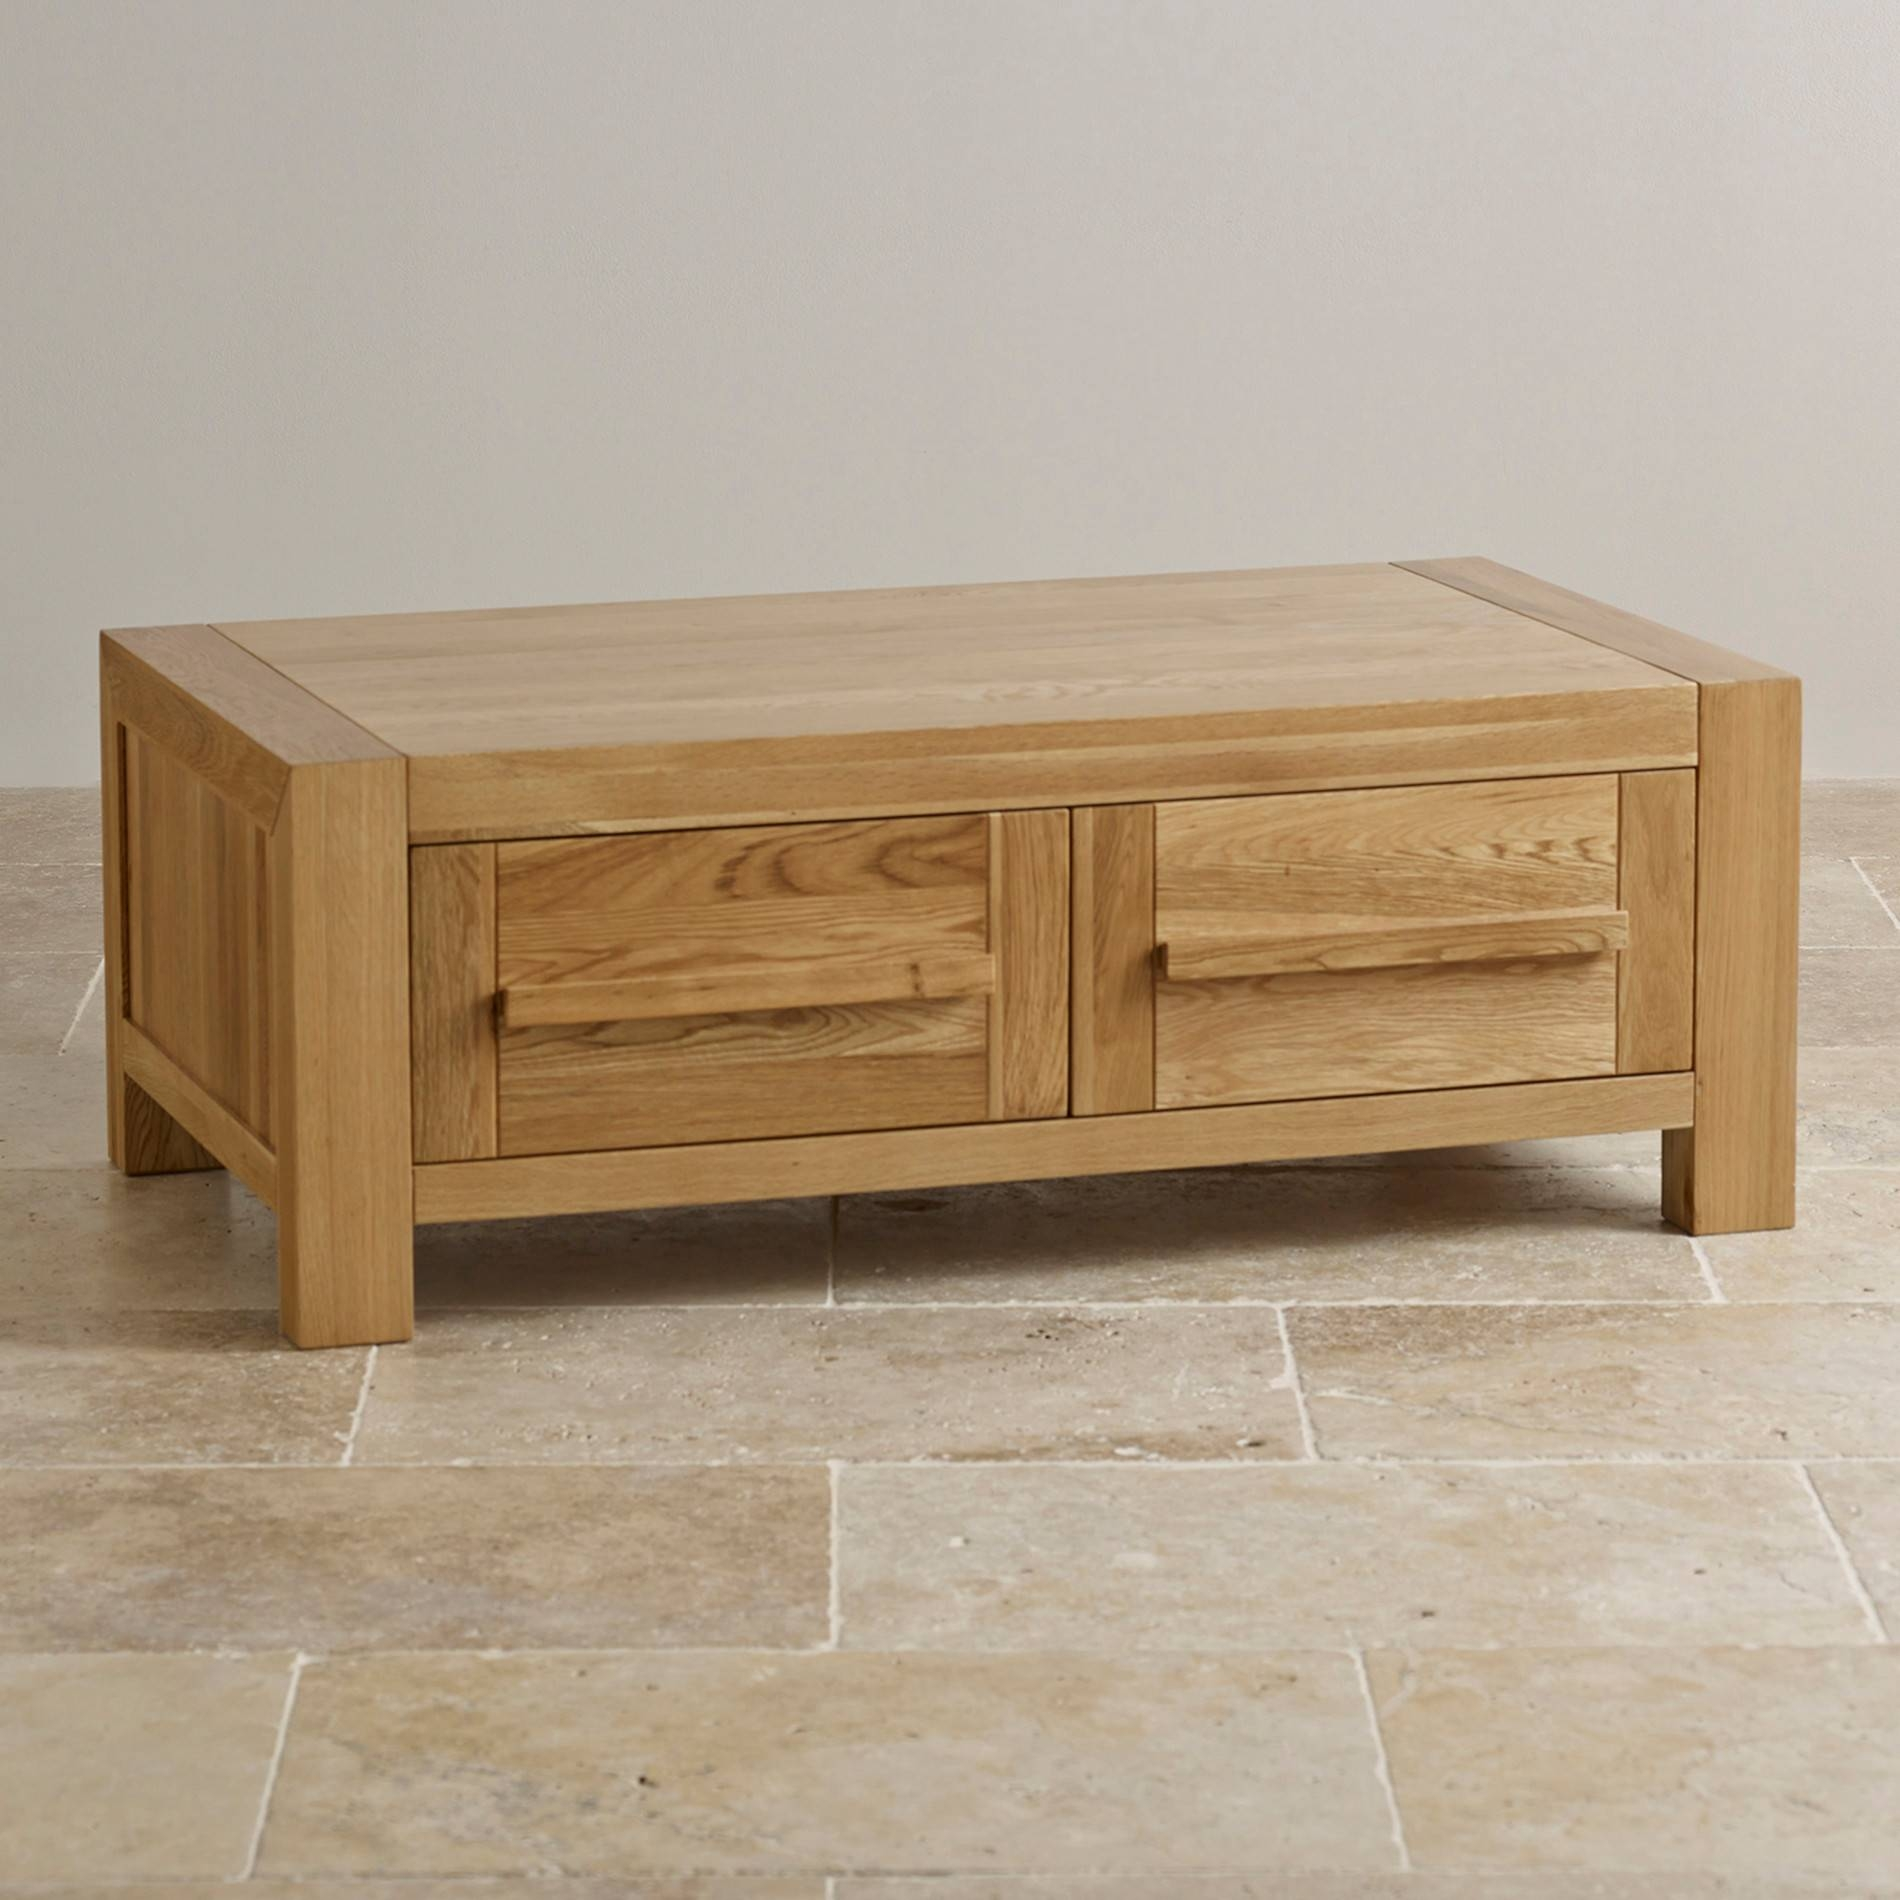 Fresco 2 Drawer Coffee Table In Solid Oak | Oak Furniture Land Within Oak Coffee Table With Storage (View 4 of 15)